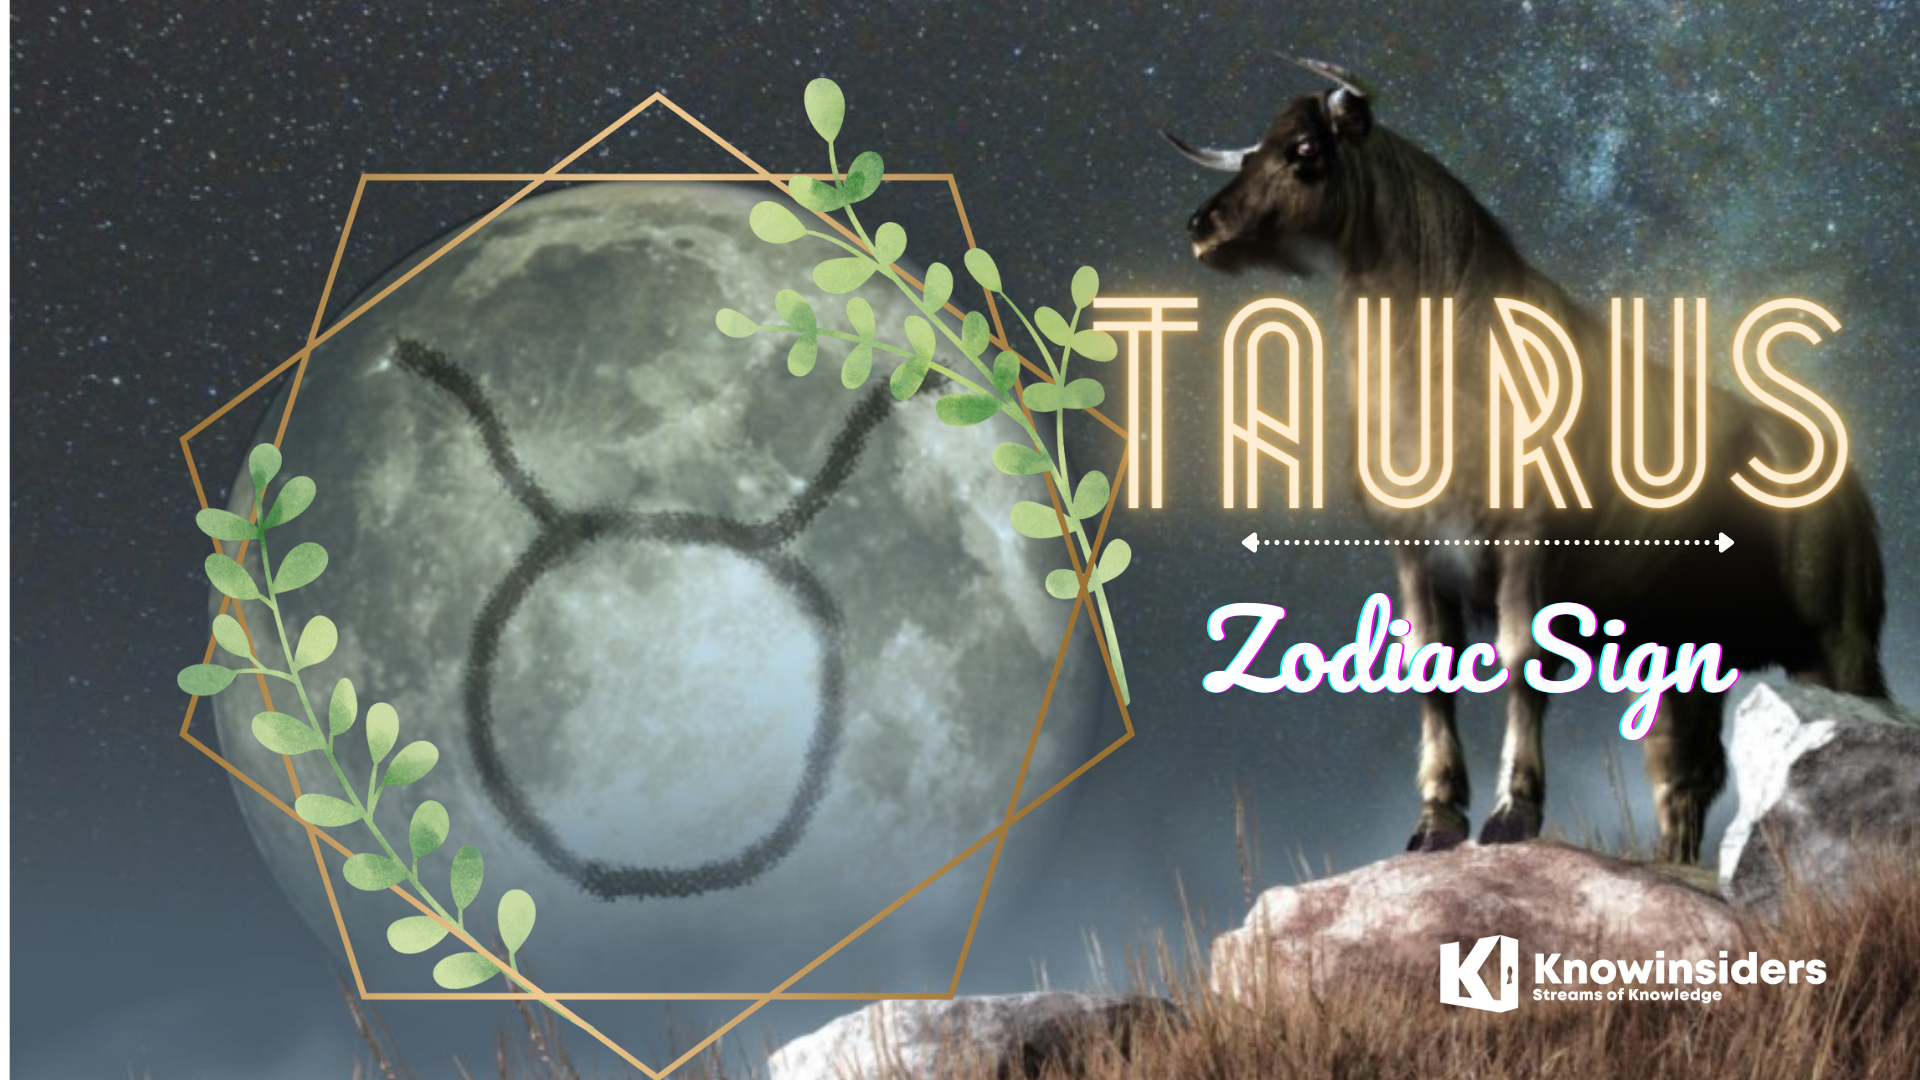 Top 5 Most Beautiful Zodiac Signs According To Astrology